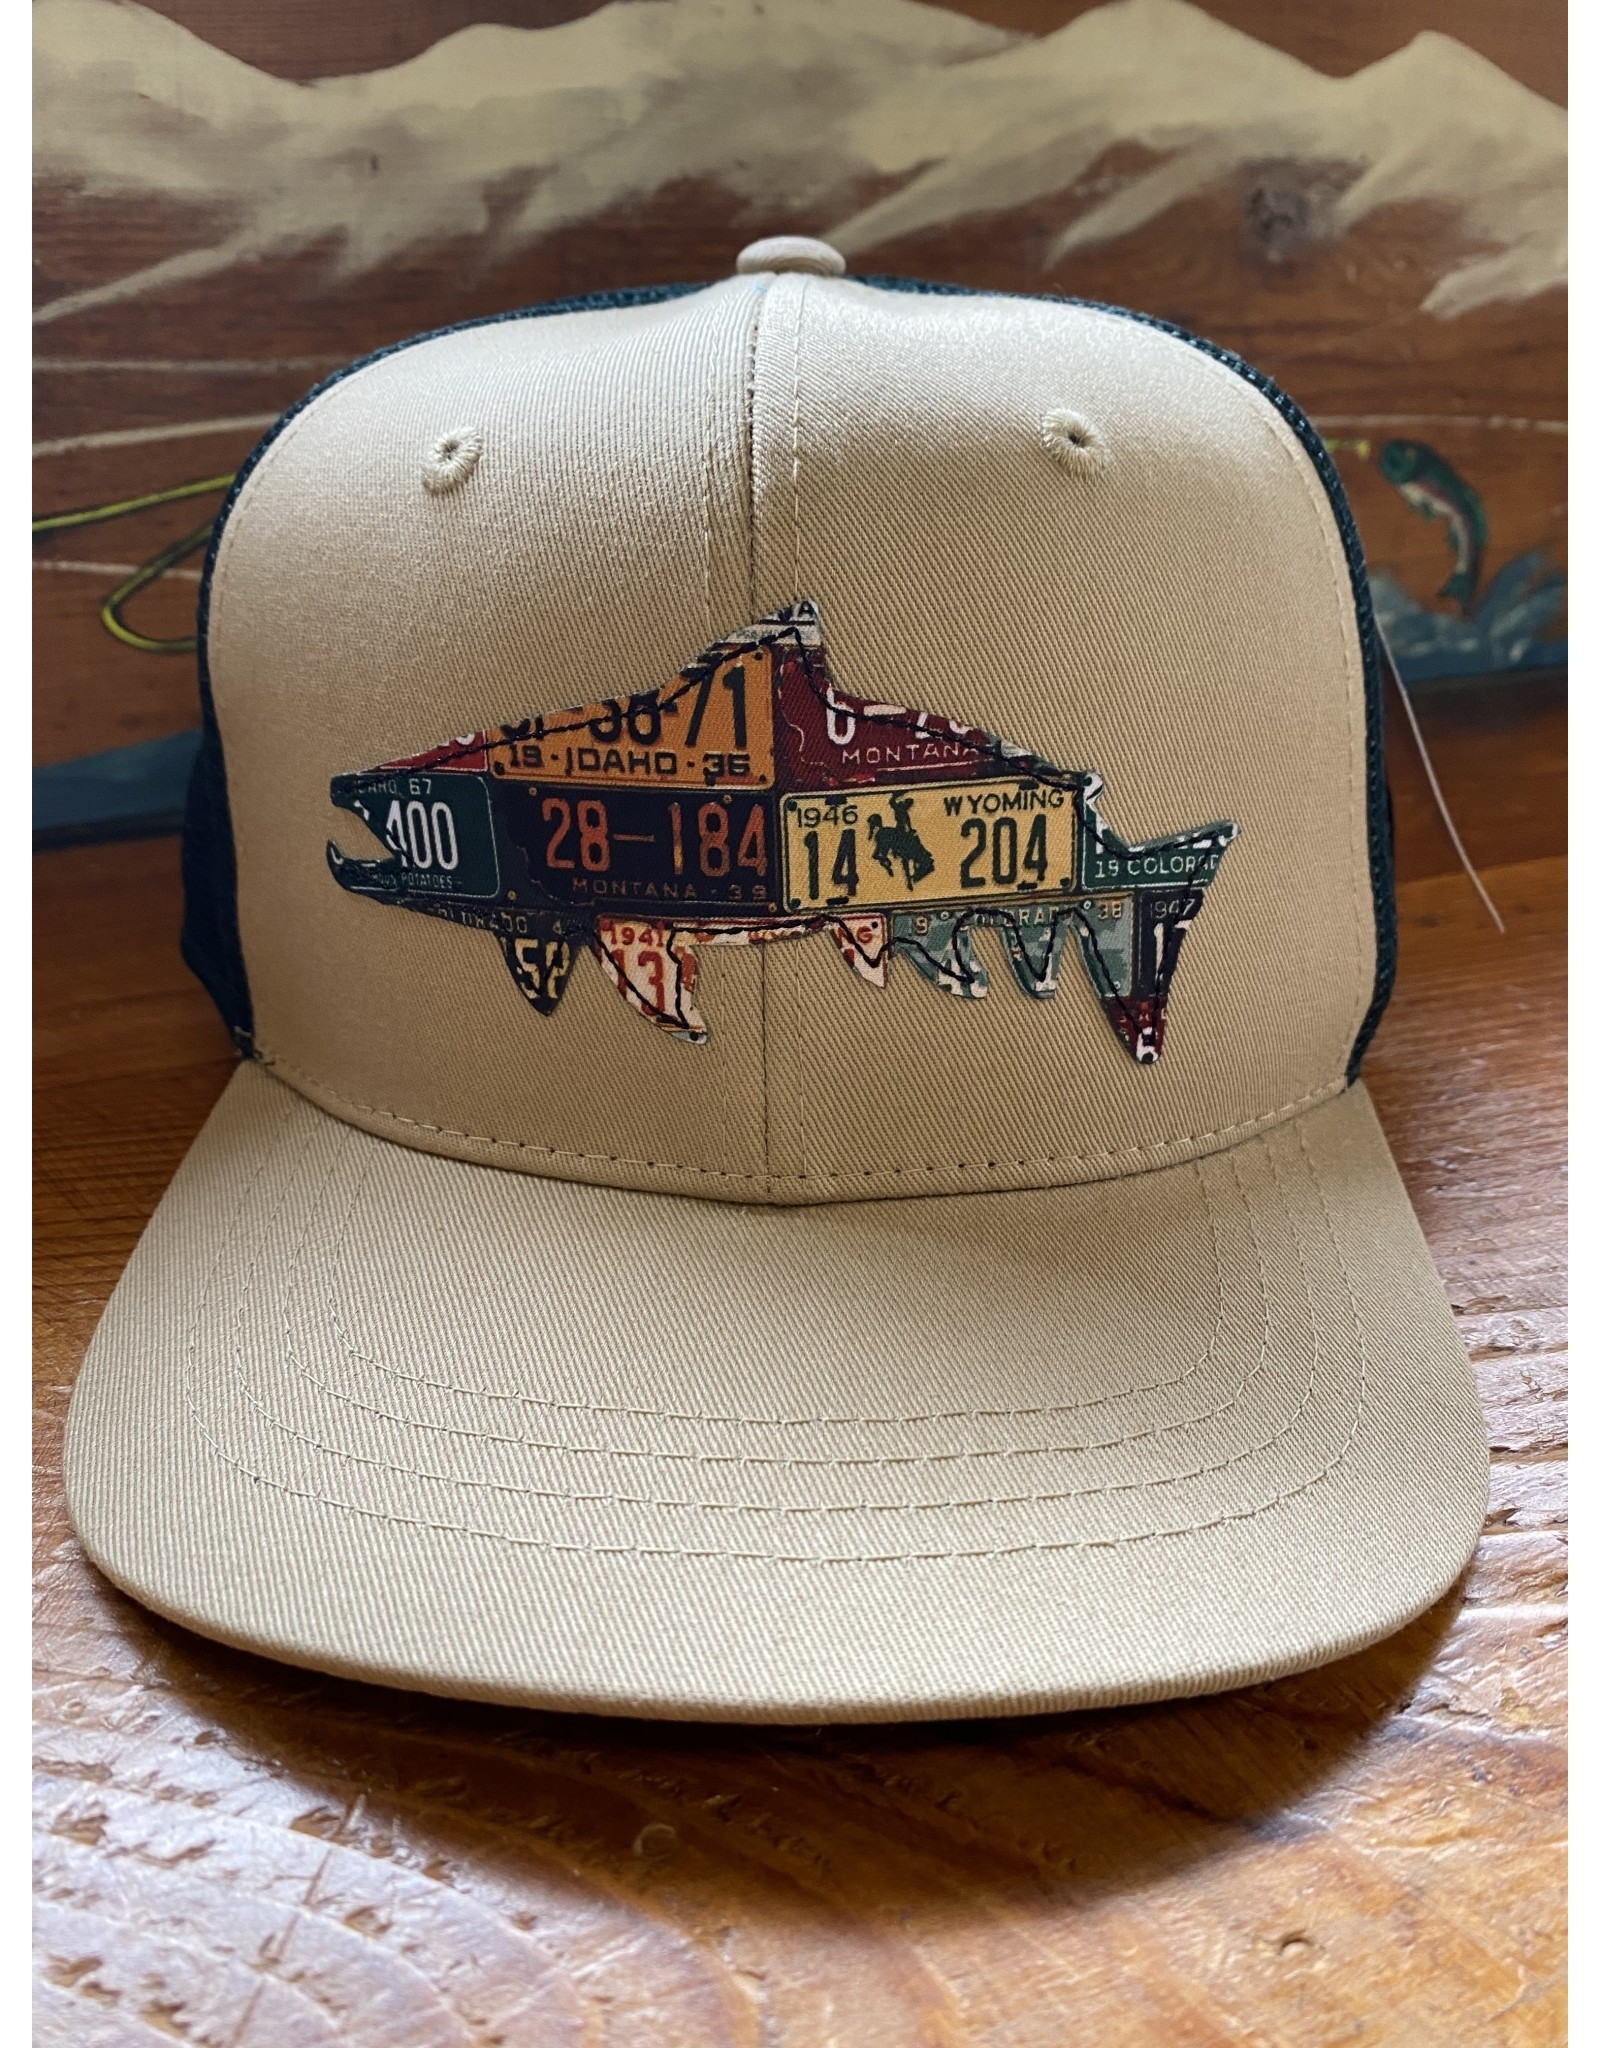 Rep Your Water Western Trout License Plate Fish Trucker Hat (Rep Your Water/ Cody's Fish Collaboration)